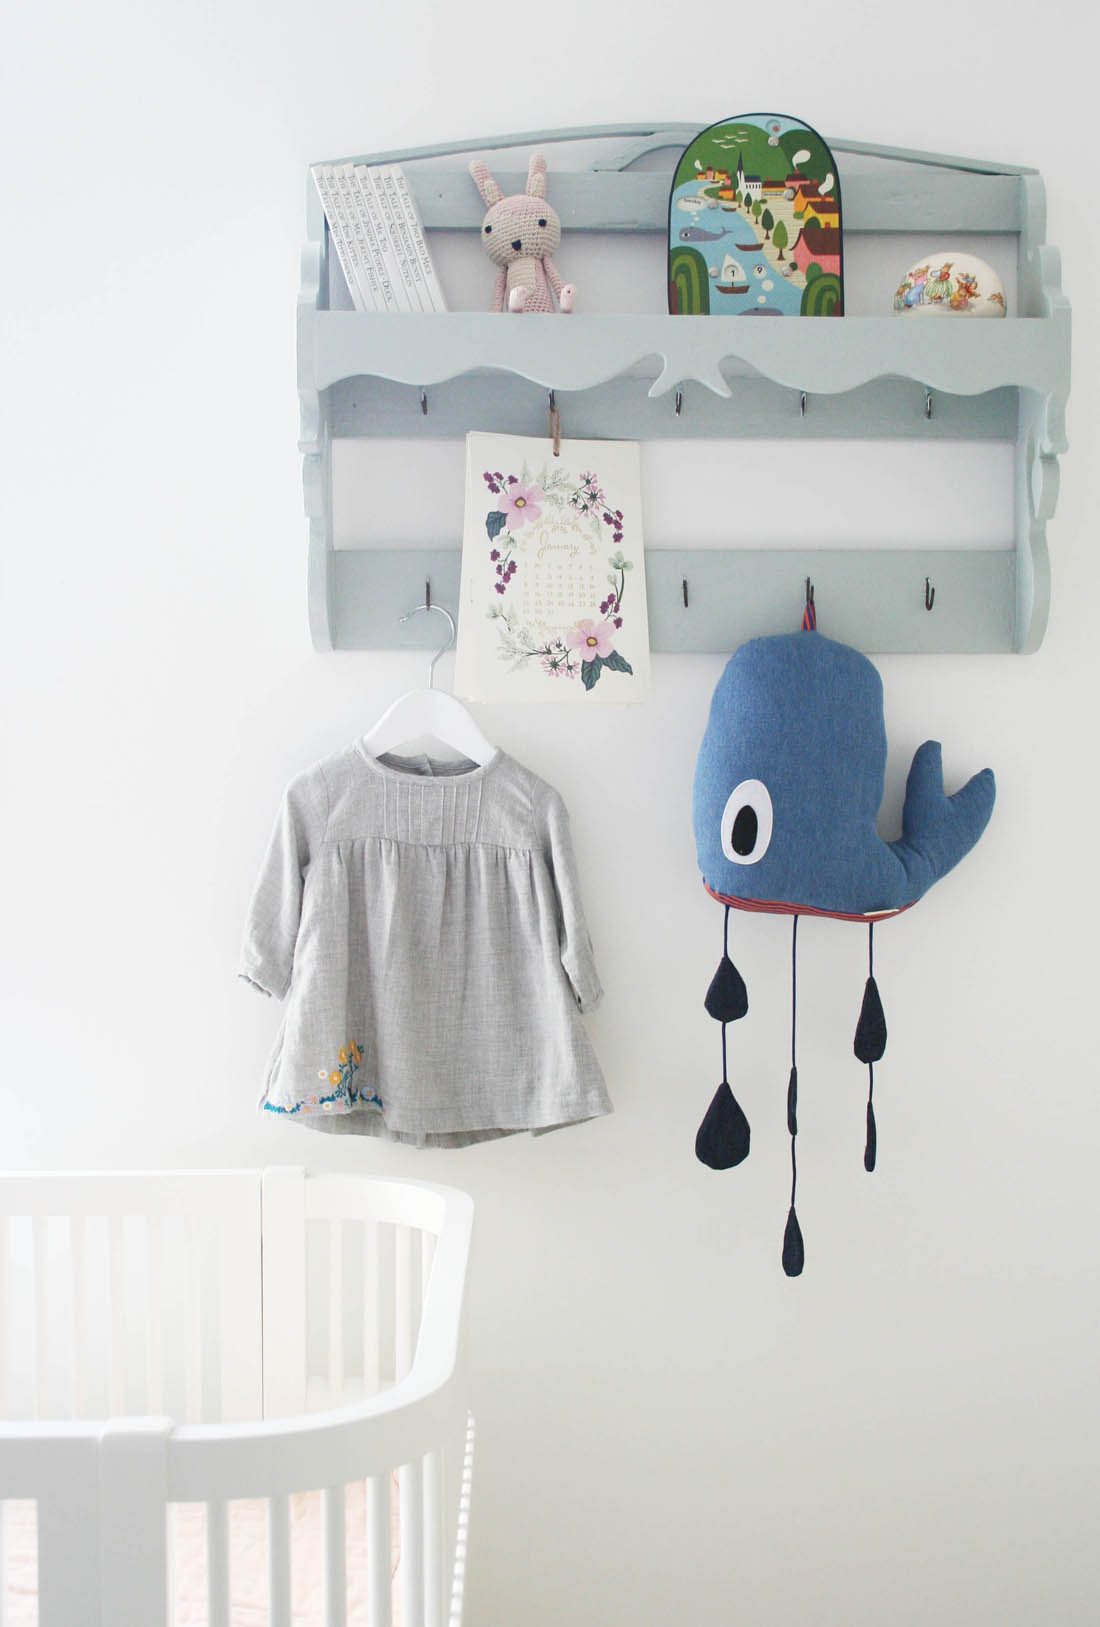 Nursery tour | Ferm Living whale mobile | Vintage shelf unit | Apartment Apothecary